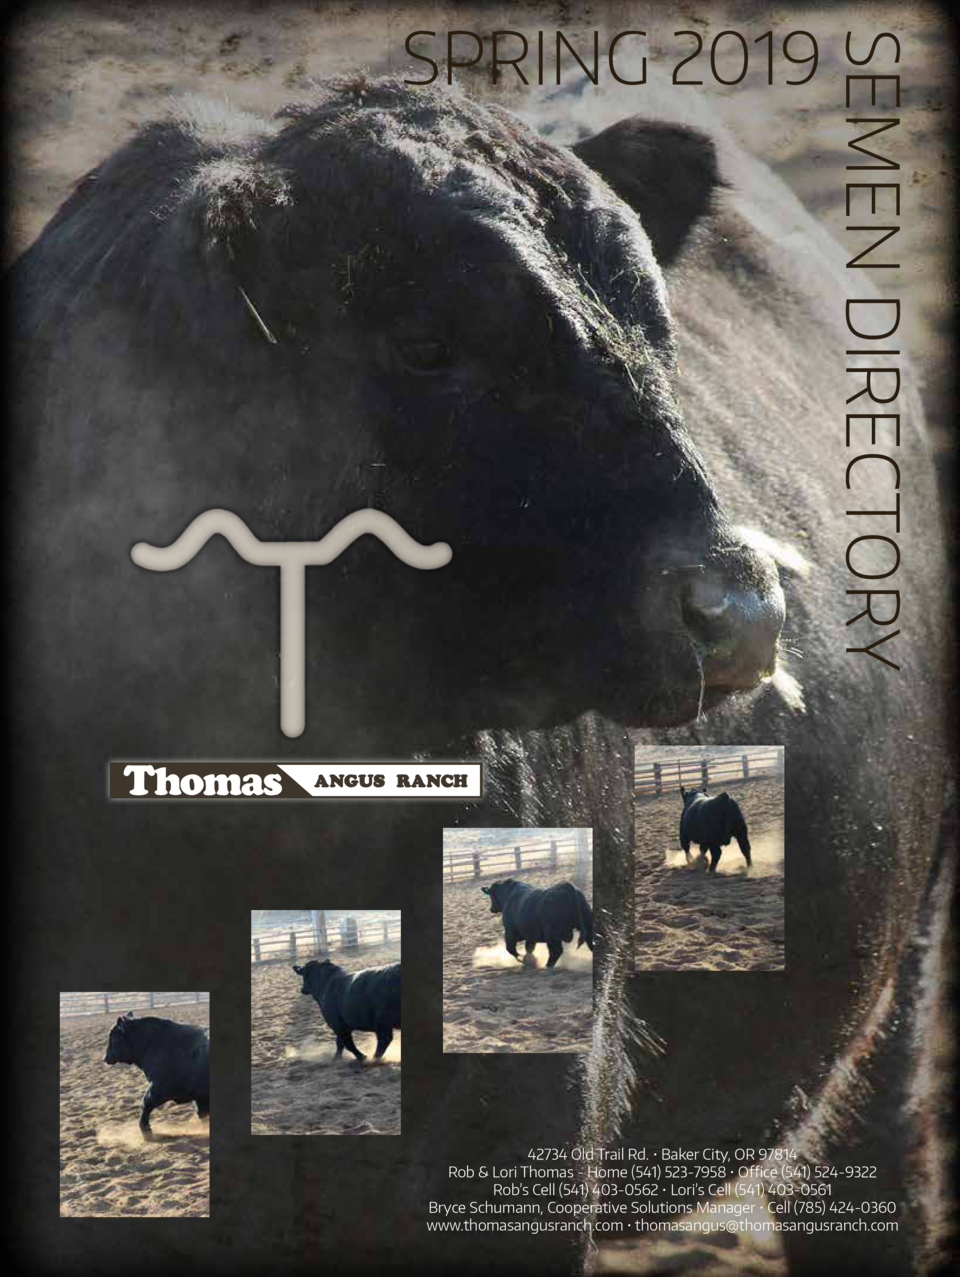 SEMEN DIRECTORY  SPRING 2019  42734 Old Trail Rd.     Baker City, OR 97814 Rob   Lori Thomas - Home  541  523-7958     Off...